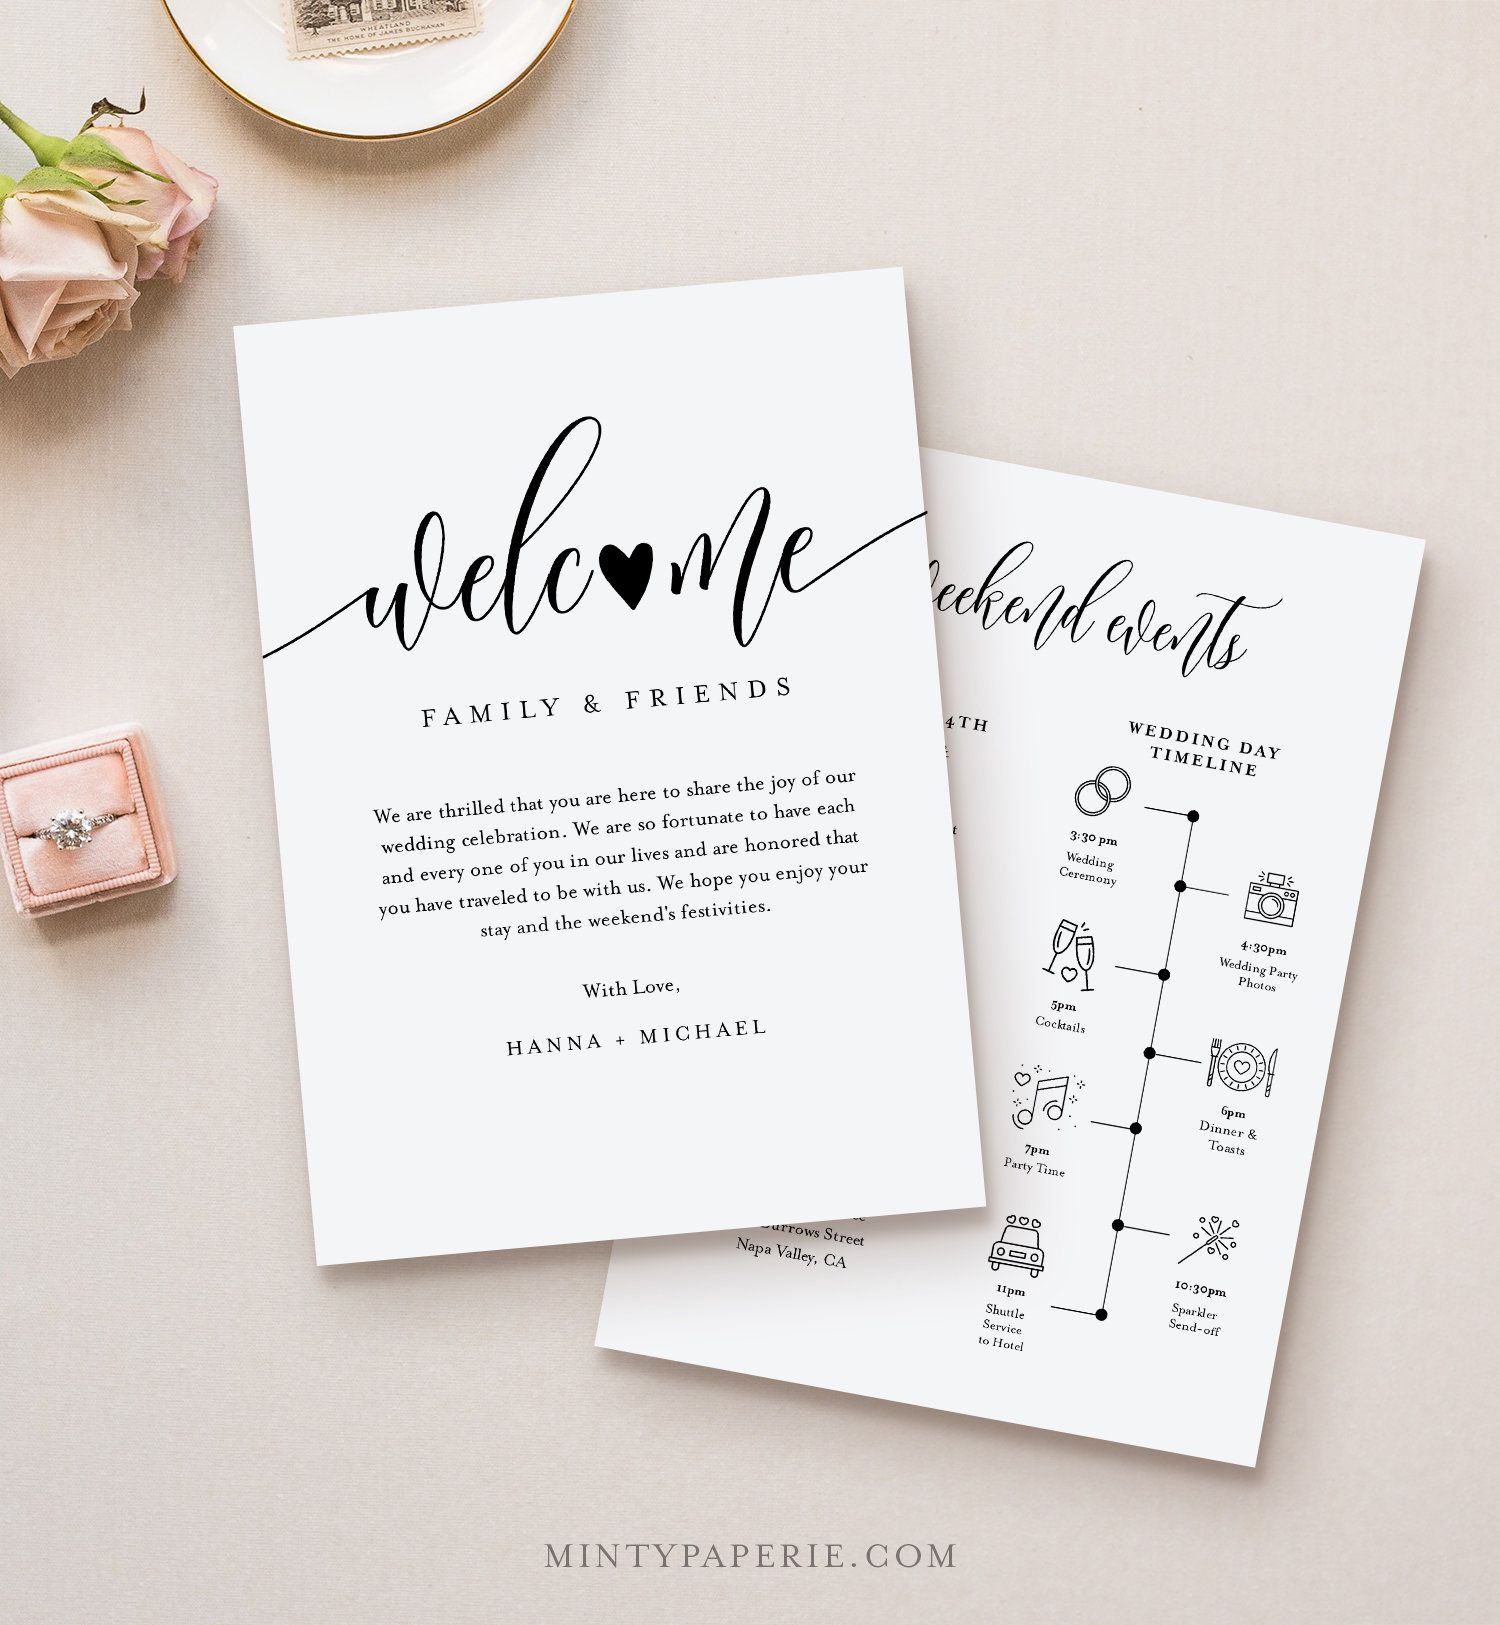 009 Singular Wedding Welcome Letter Template Download High Definition Full